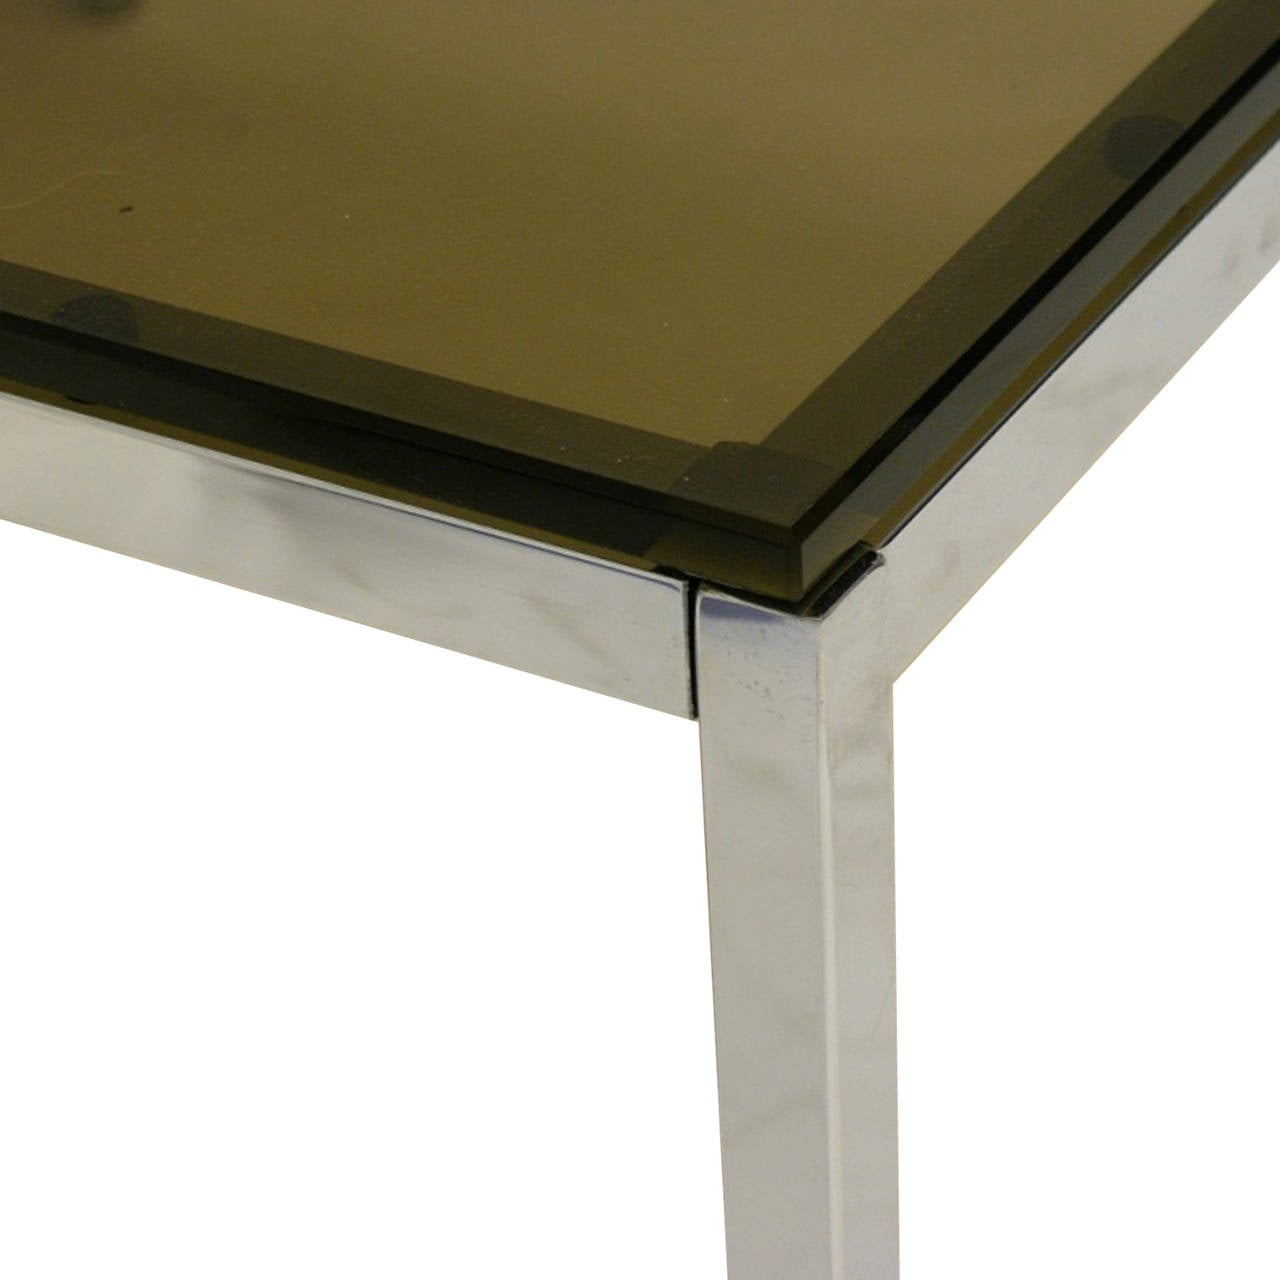 Pair Of Sleek Smoked Glass And Chrome End Tables By Steelcase For Sale At 1stdibs